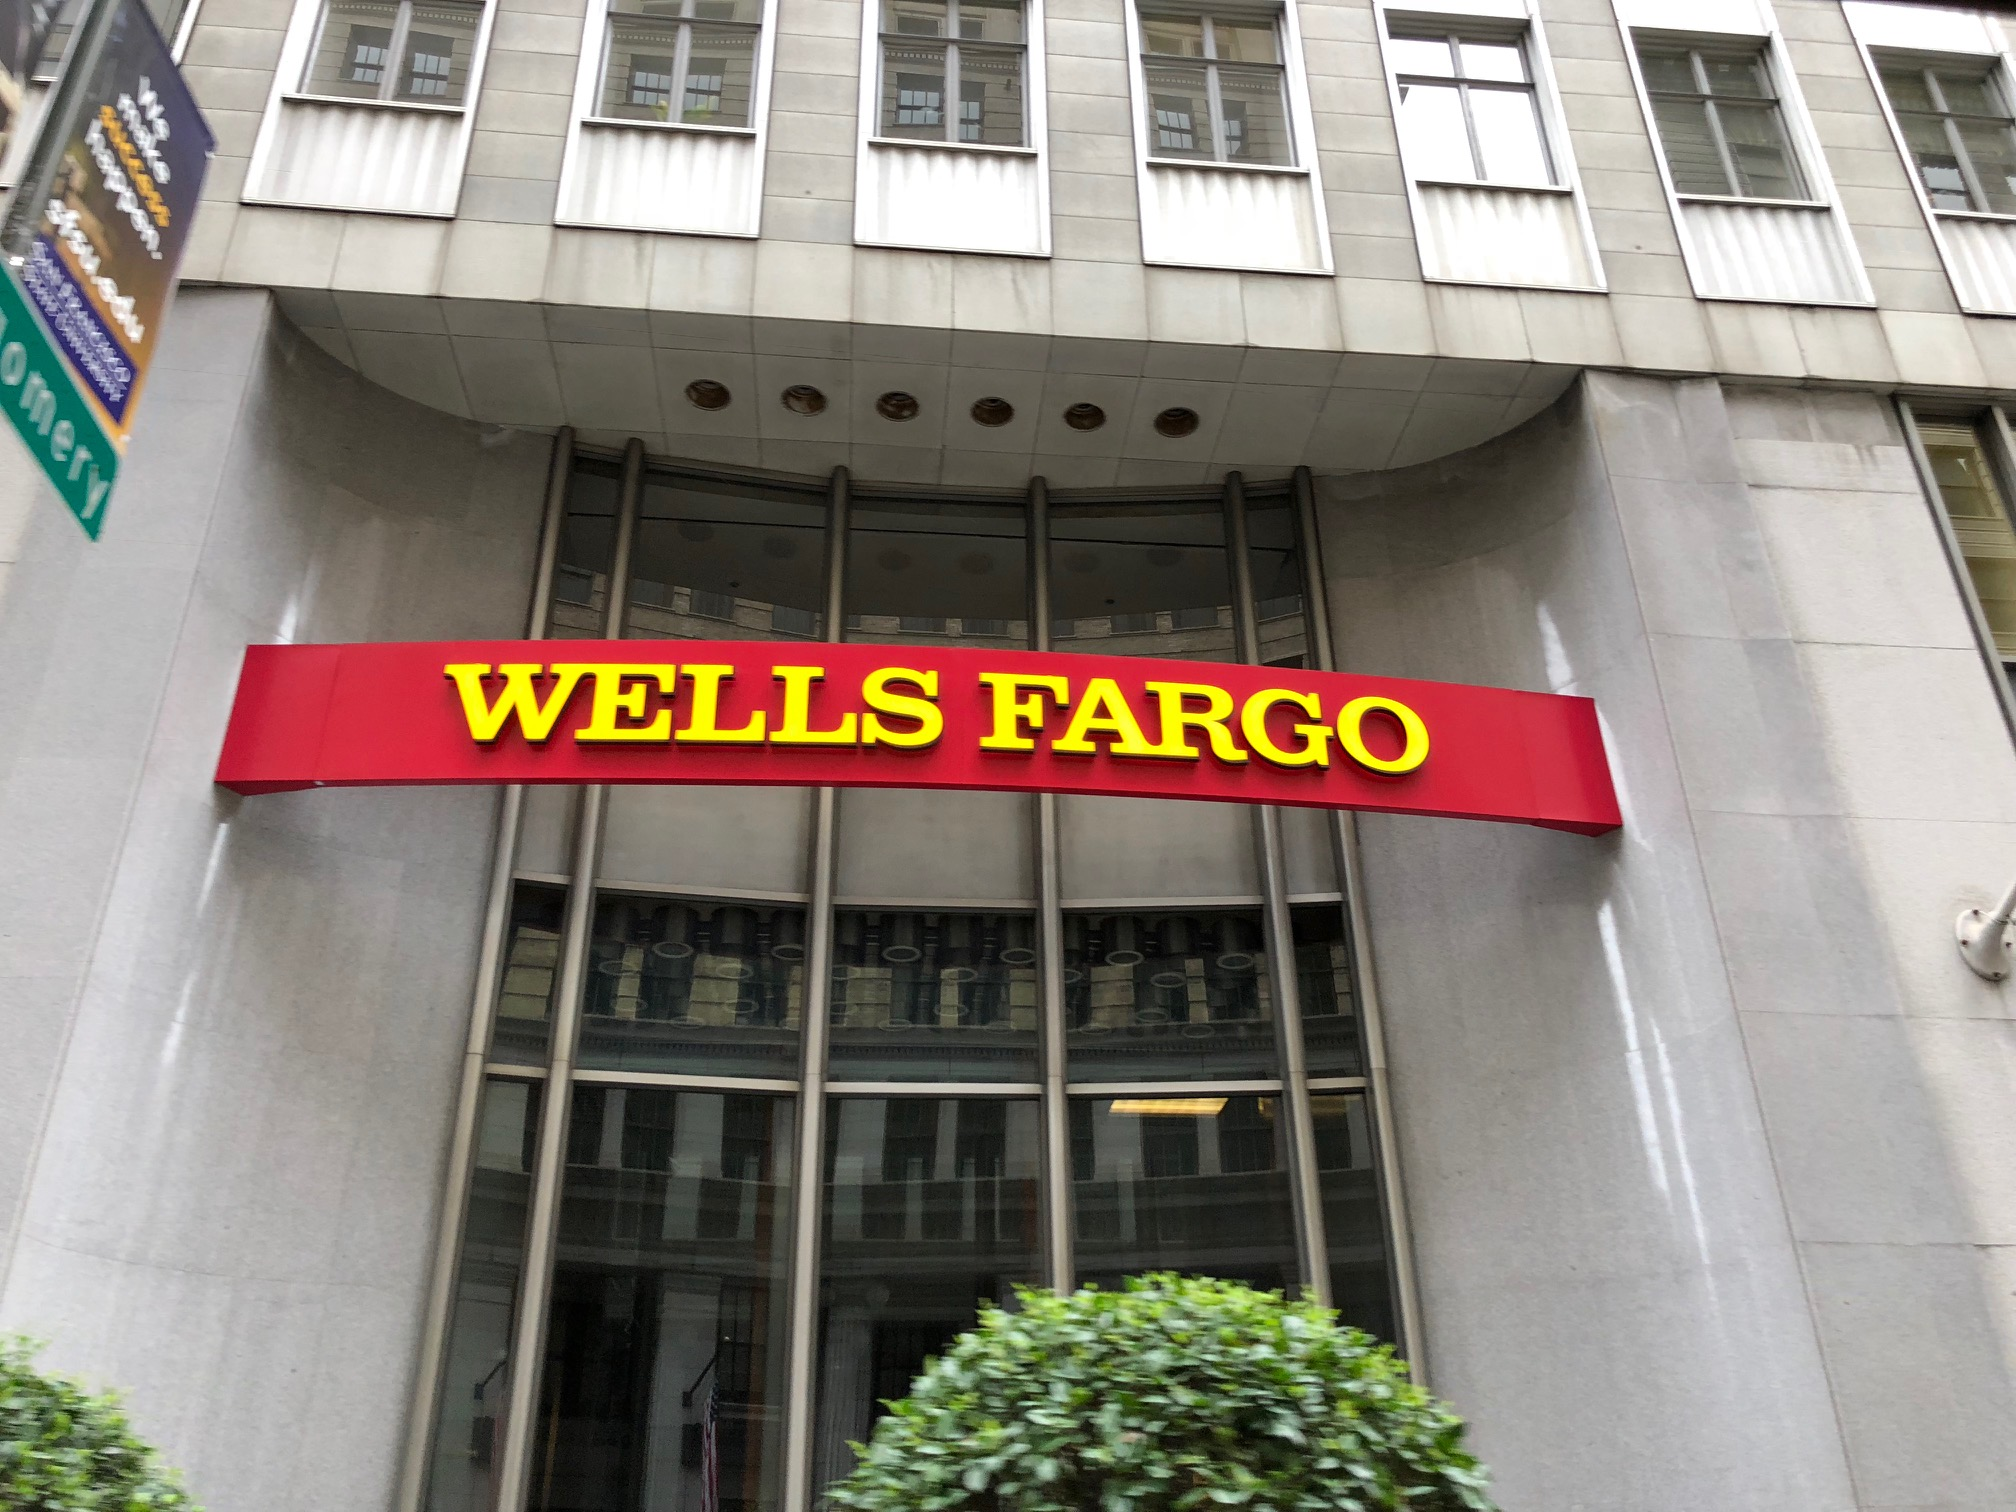 8 Ways Around the Wells Fargo No-Cash Deposits Rule